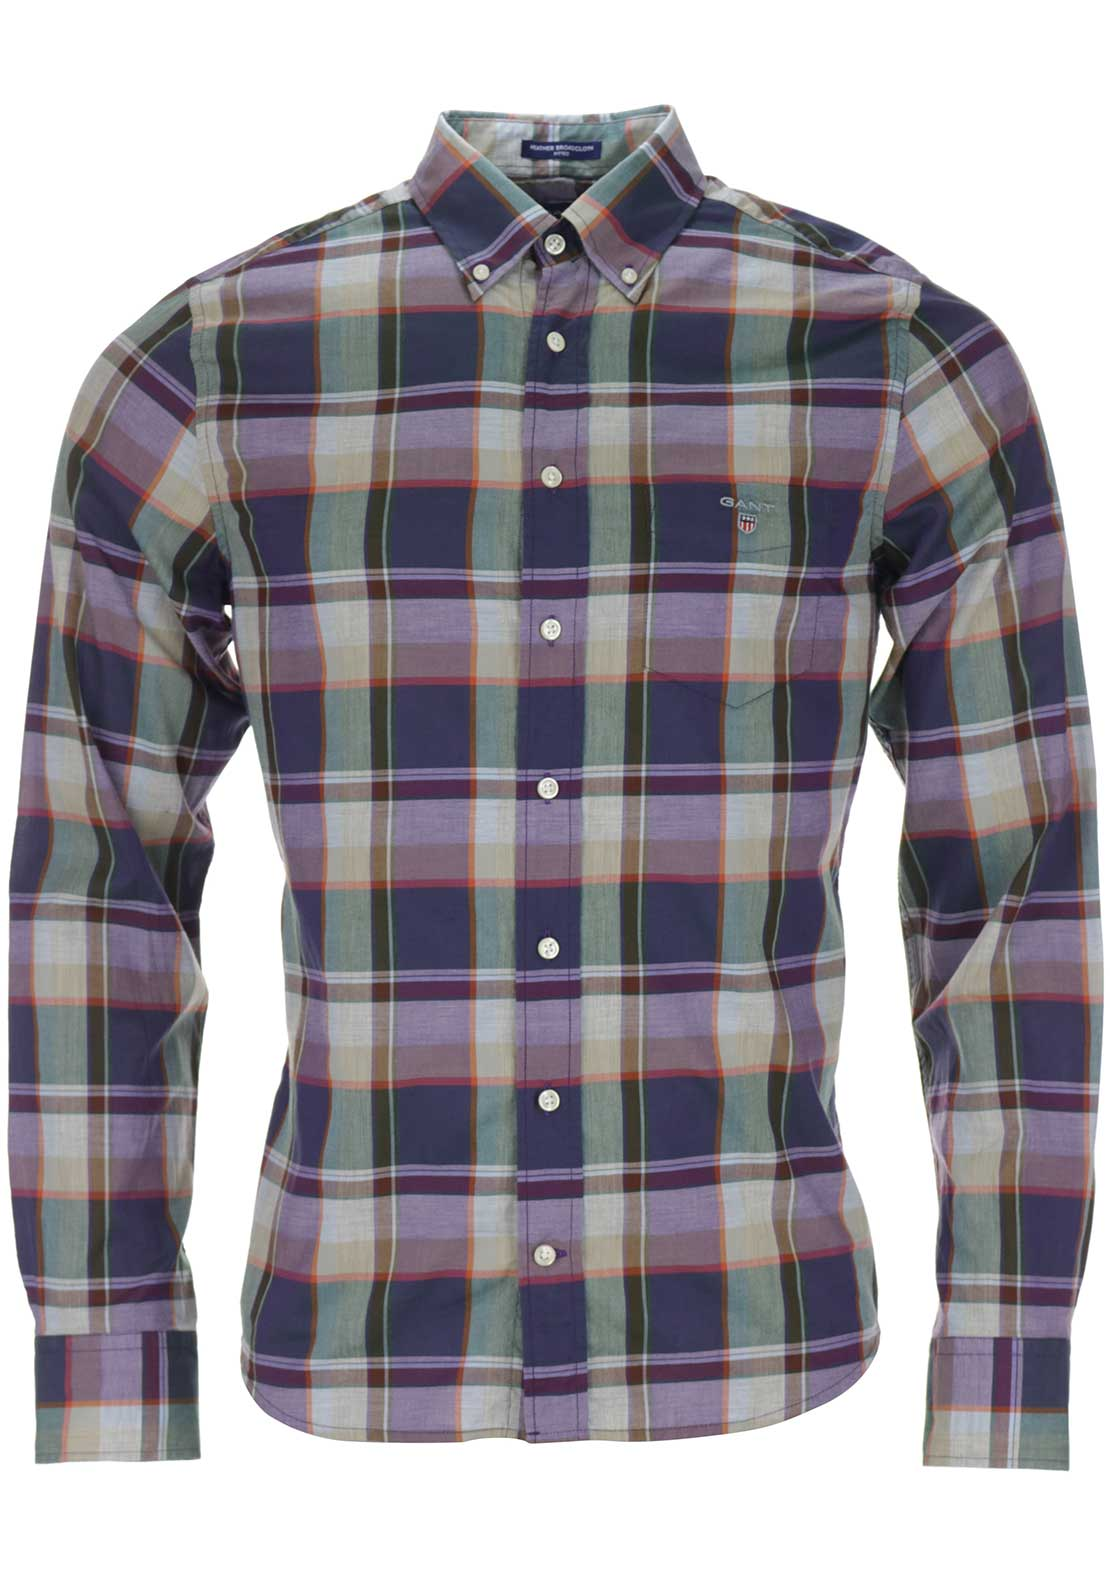 GANT Mens Heather Plaid Broadcloth Checked Shirt, Multi-Coloured